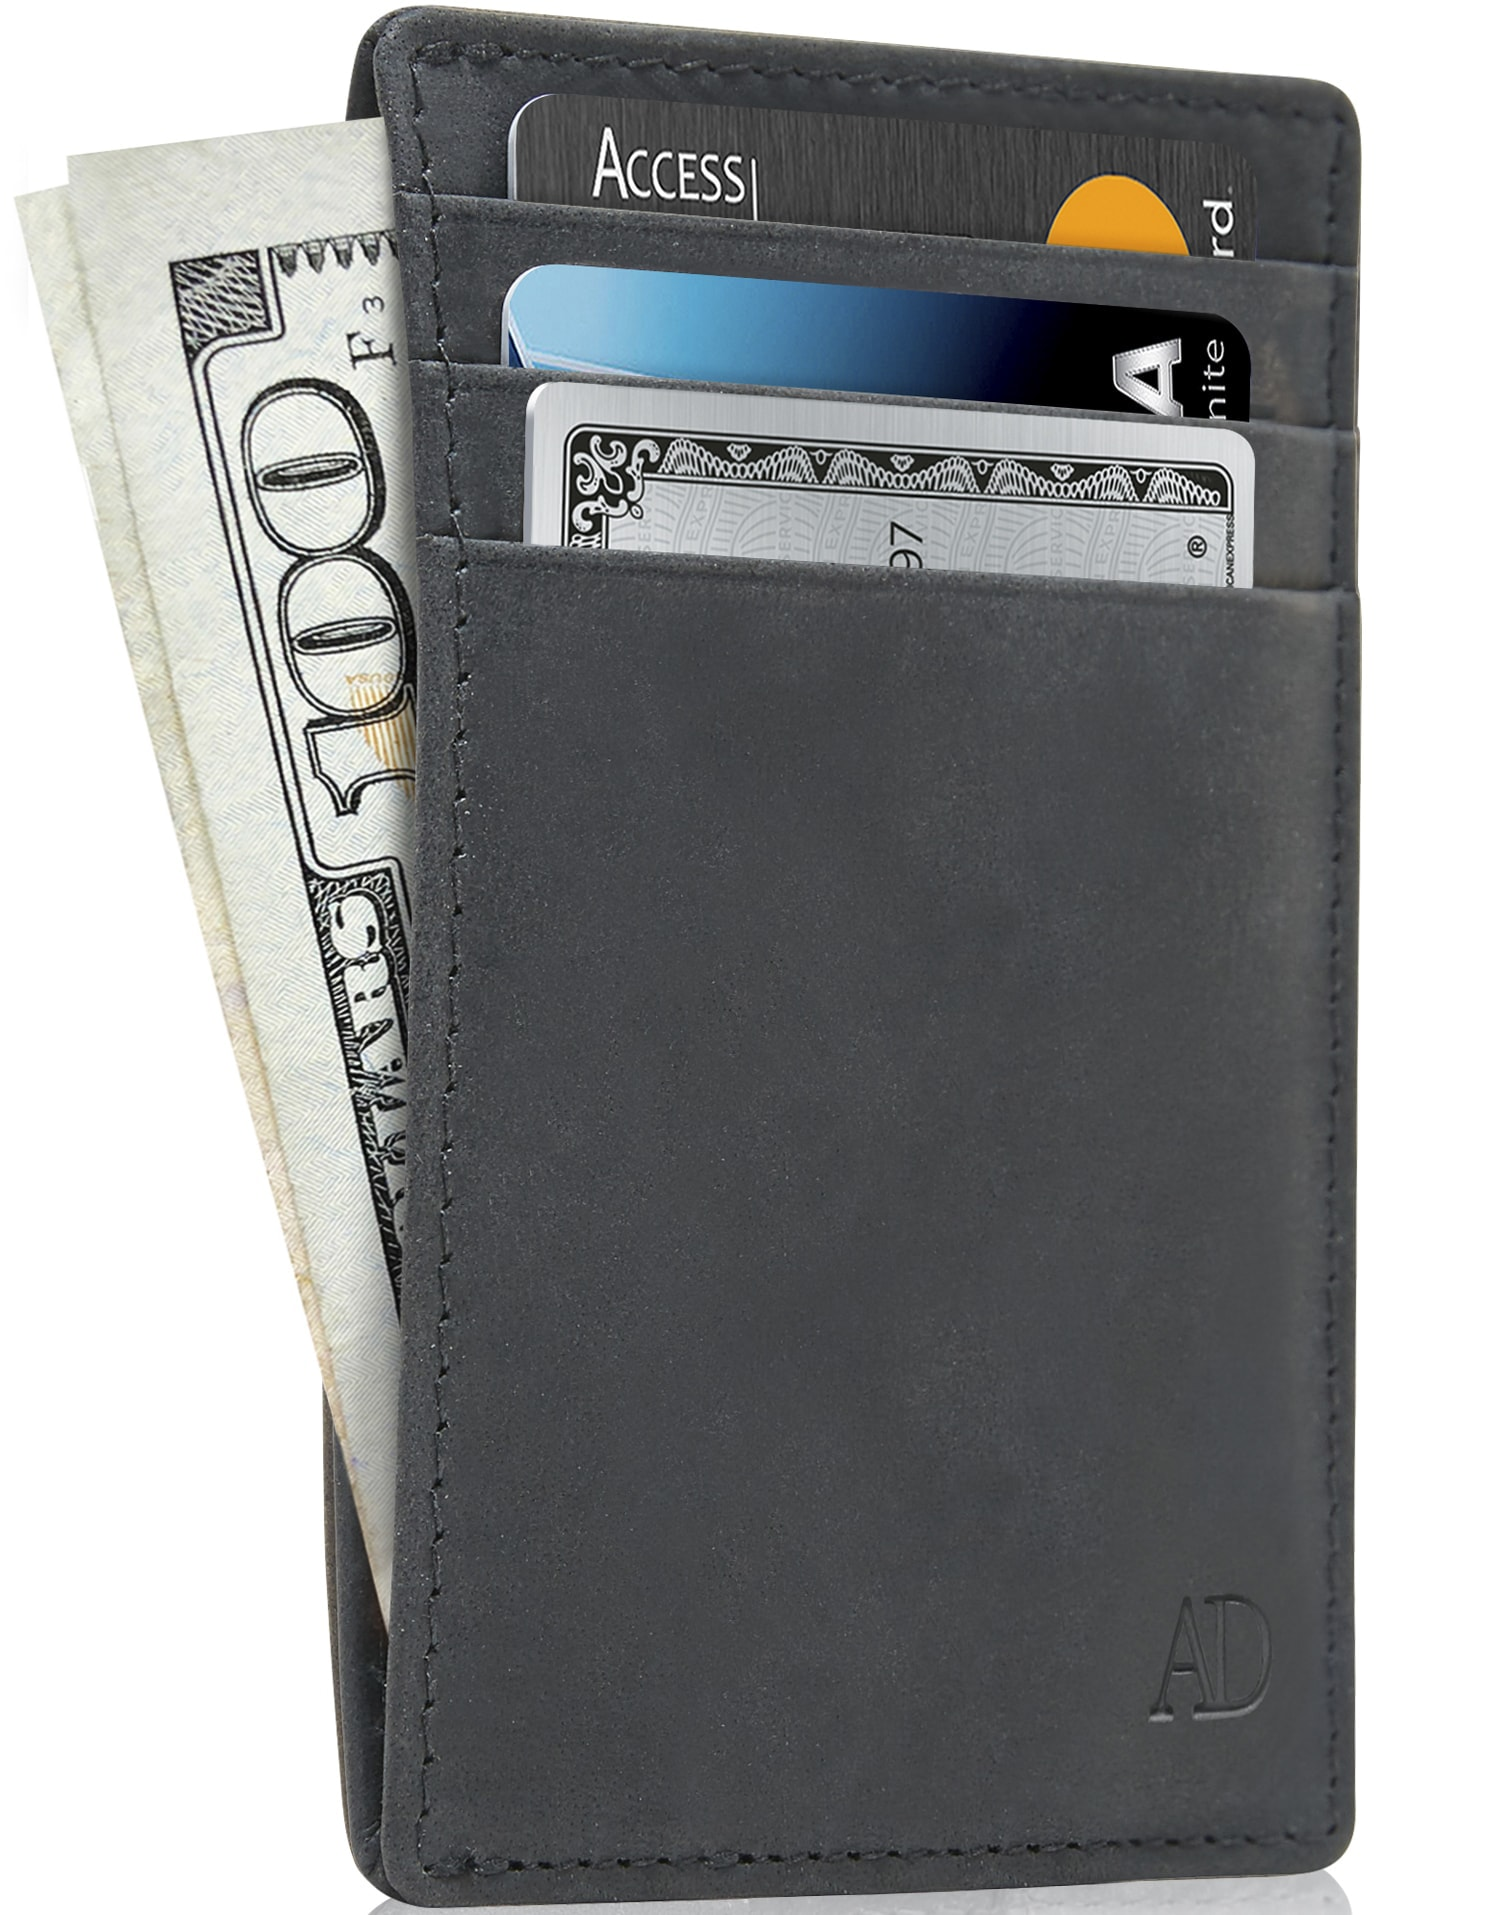 MENS PREMIUM QUALITY LUXURY BLACK SOFT LEATHER CREDIT CARD HOLDER WALLET BOXED